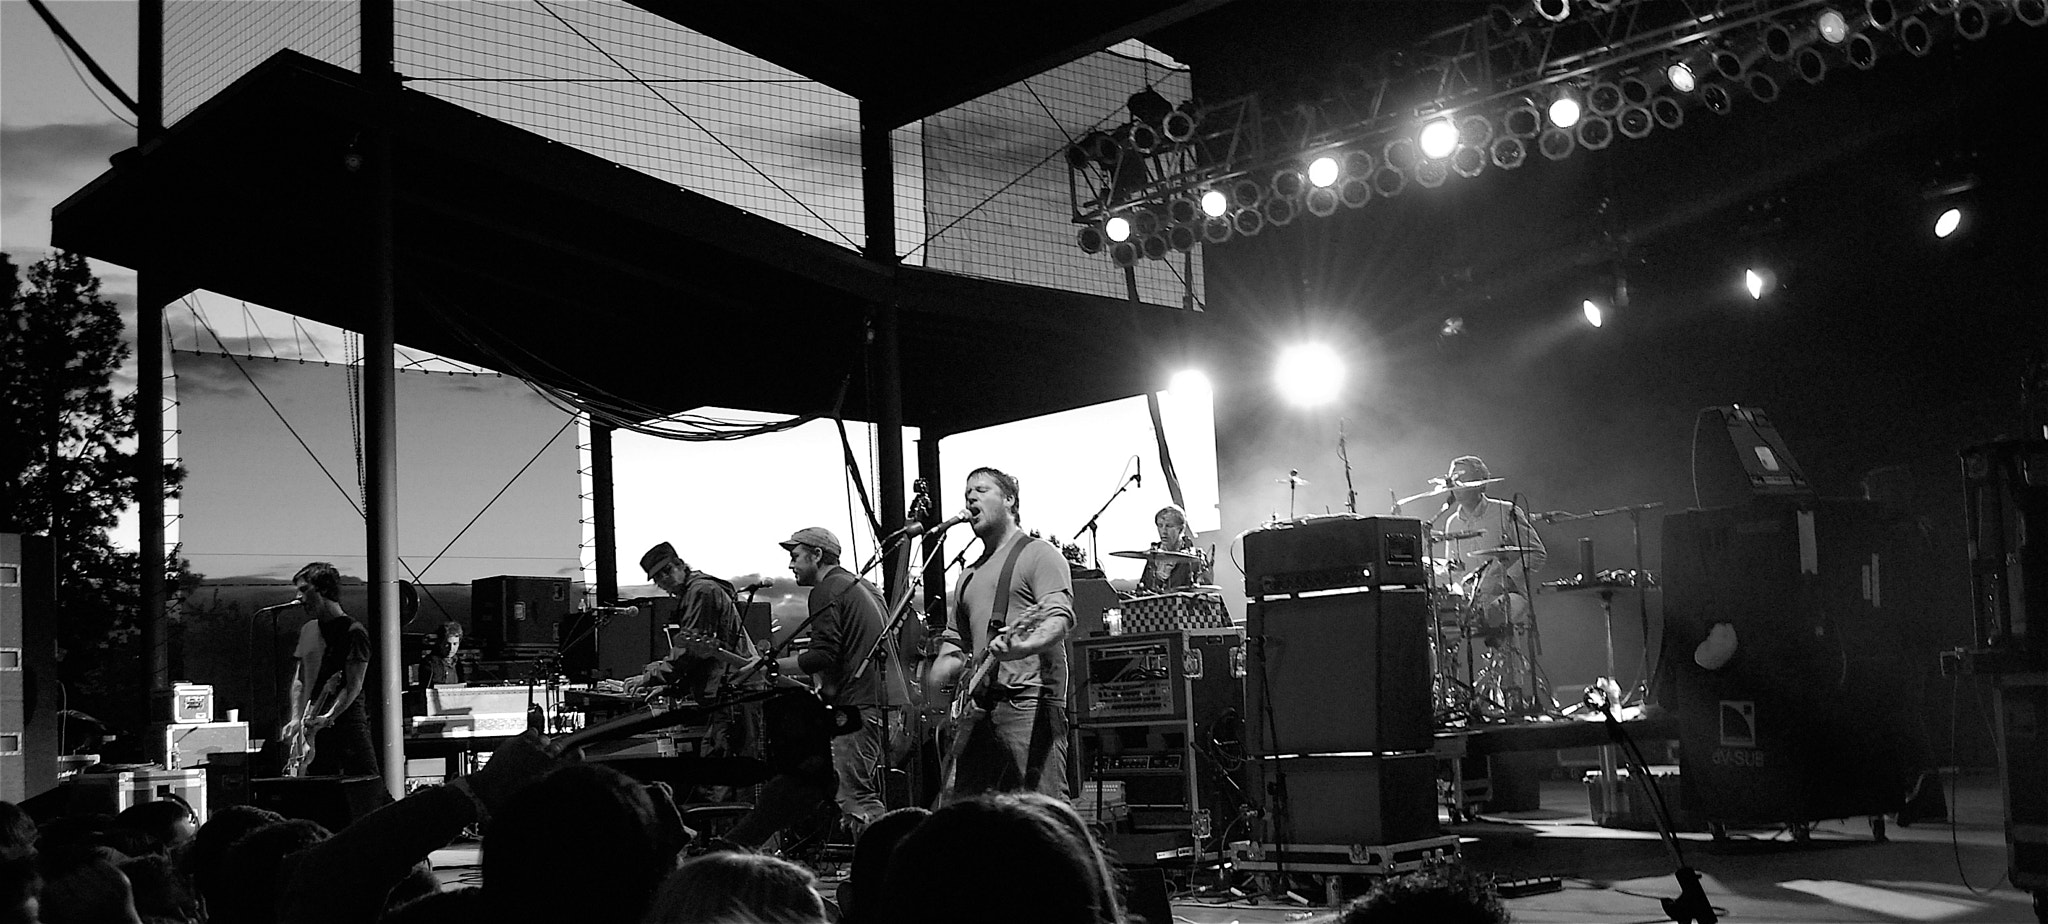 Photograph Modest Mouse in Bend, OR by Brendan Lilly on 500px